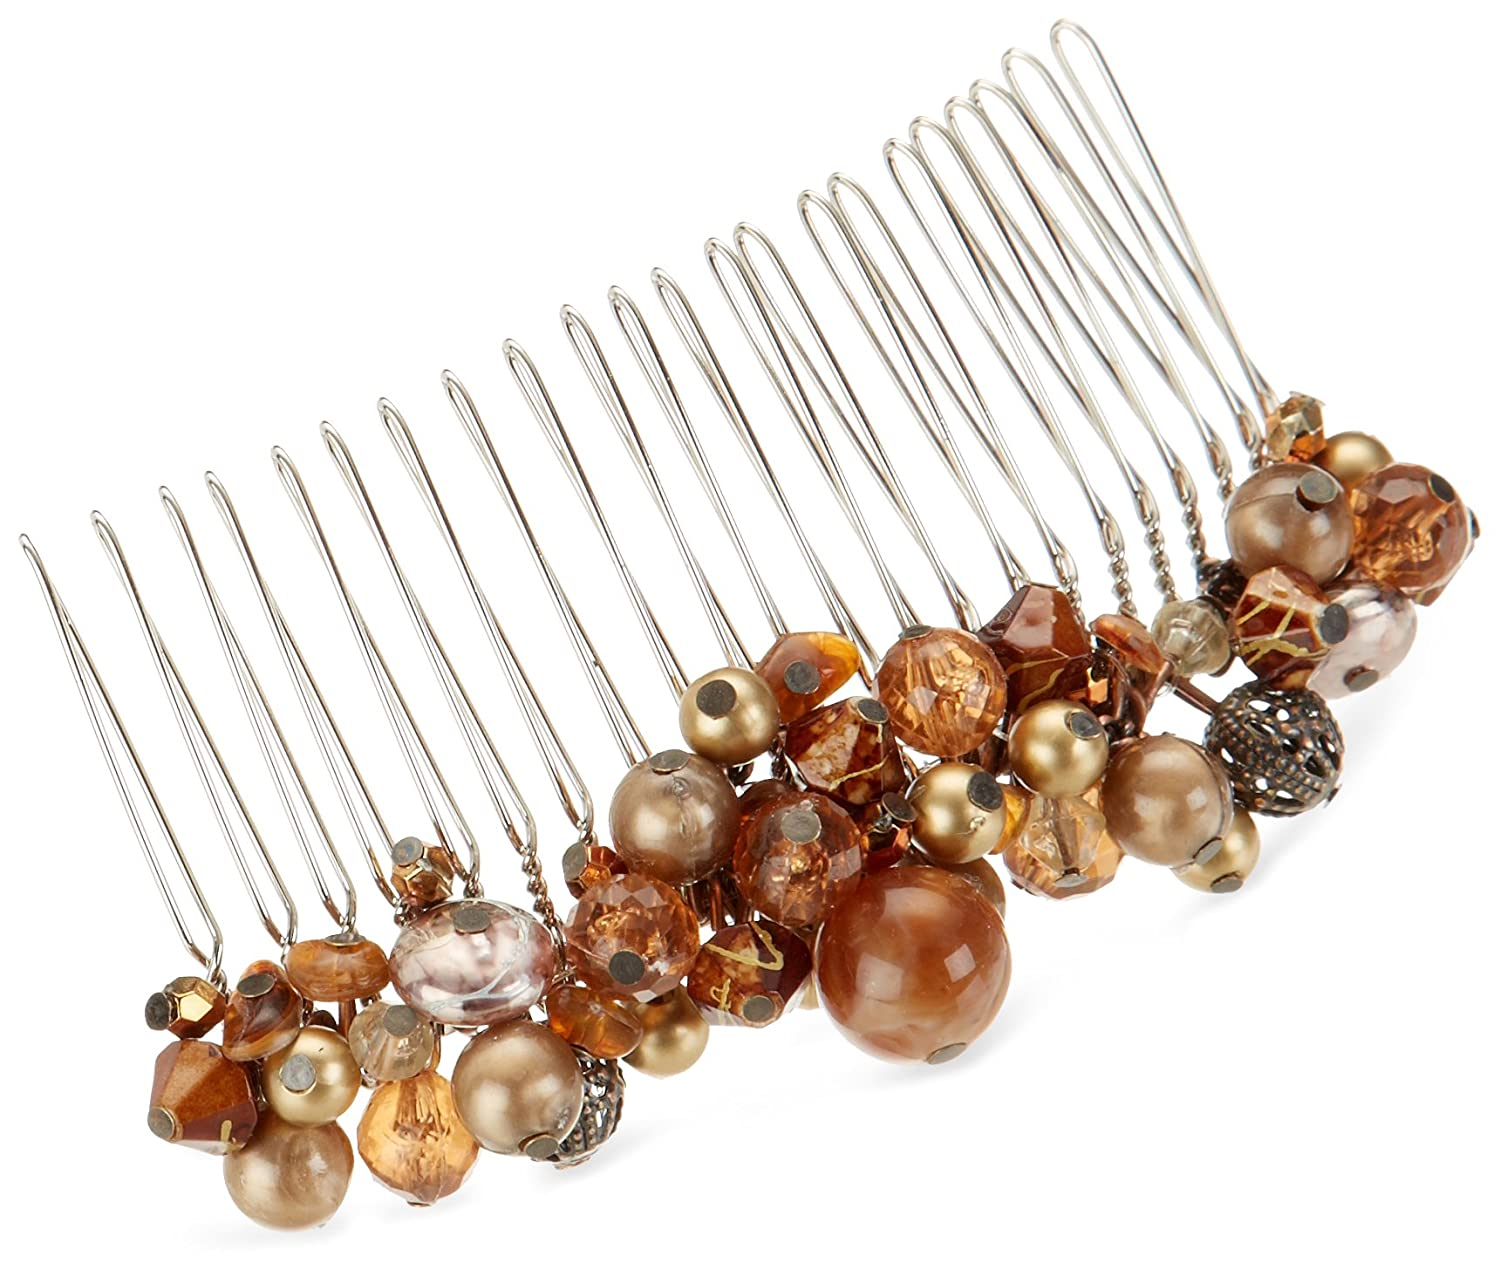 Revlon free Metal Comb with Beads Los Angeles Mall